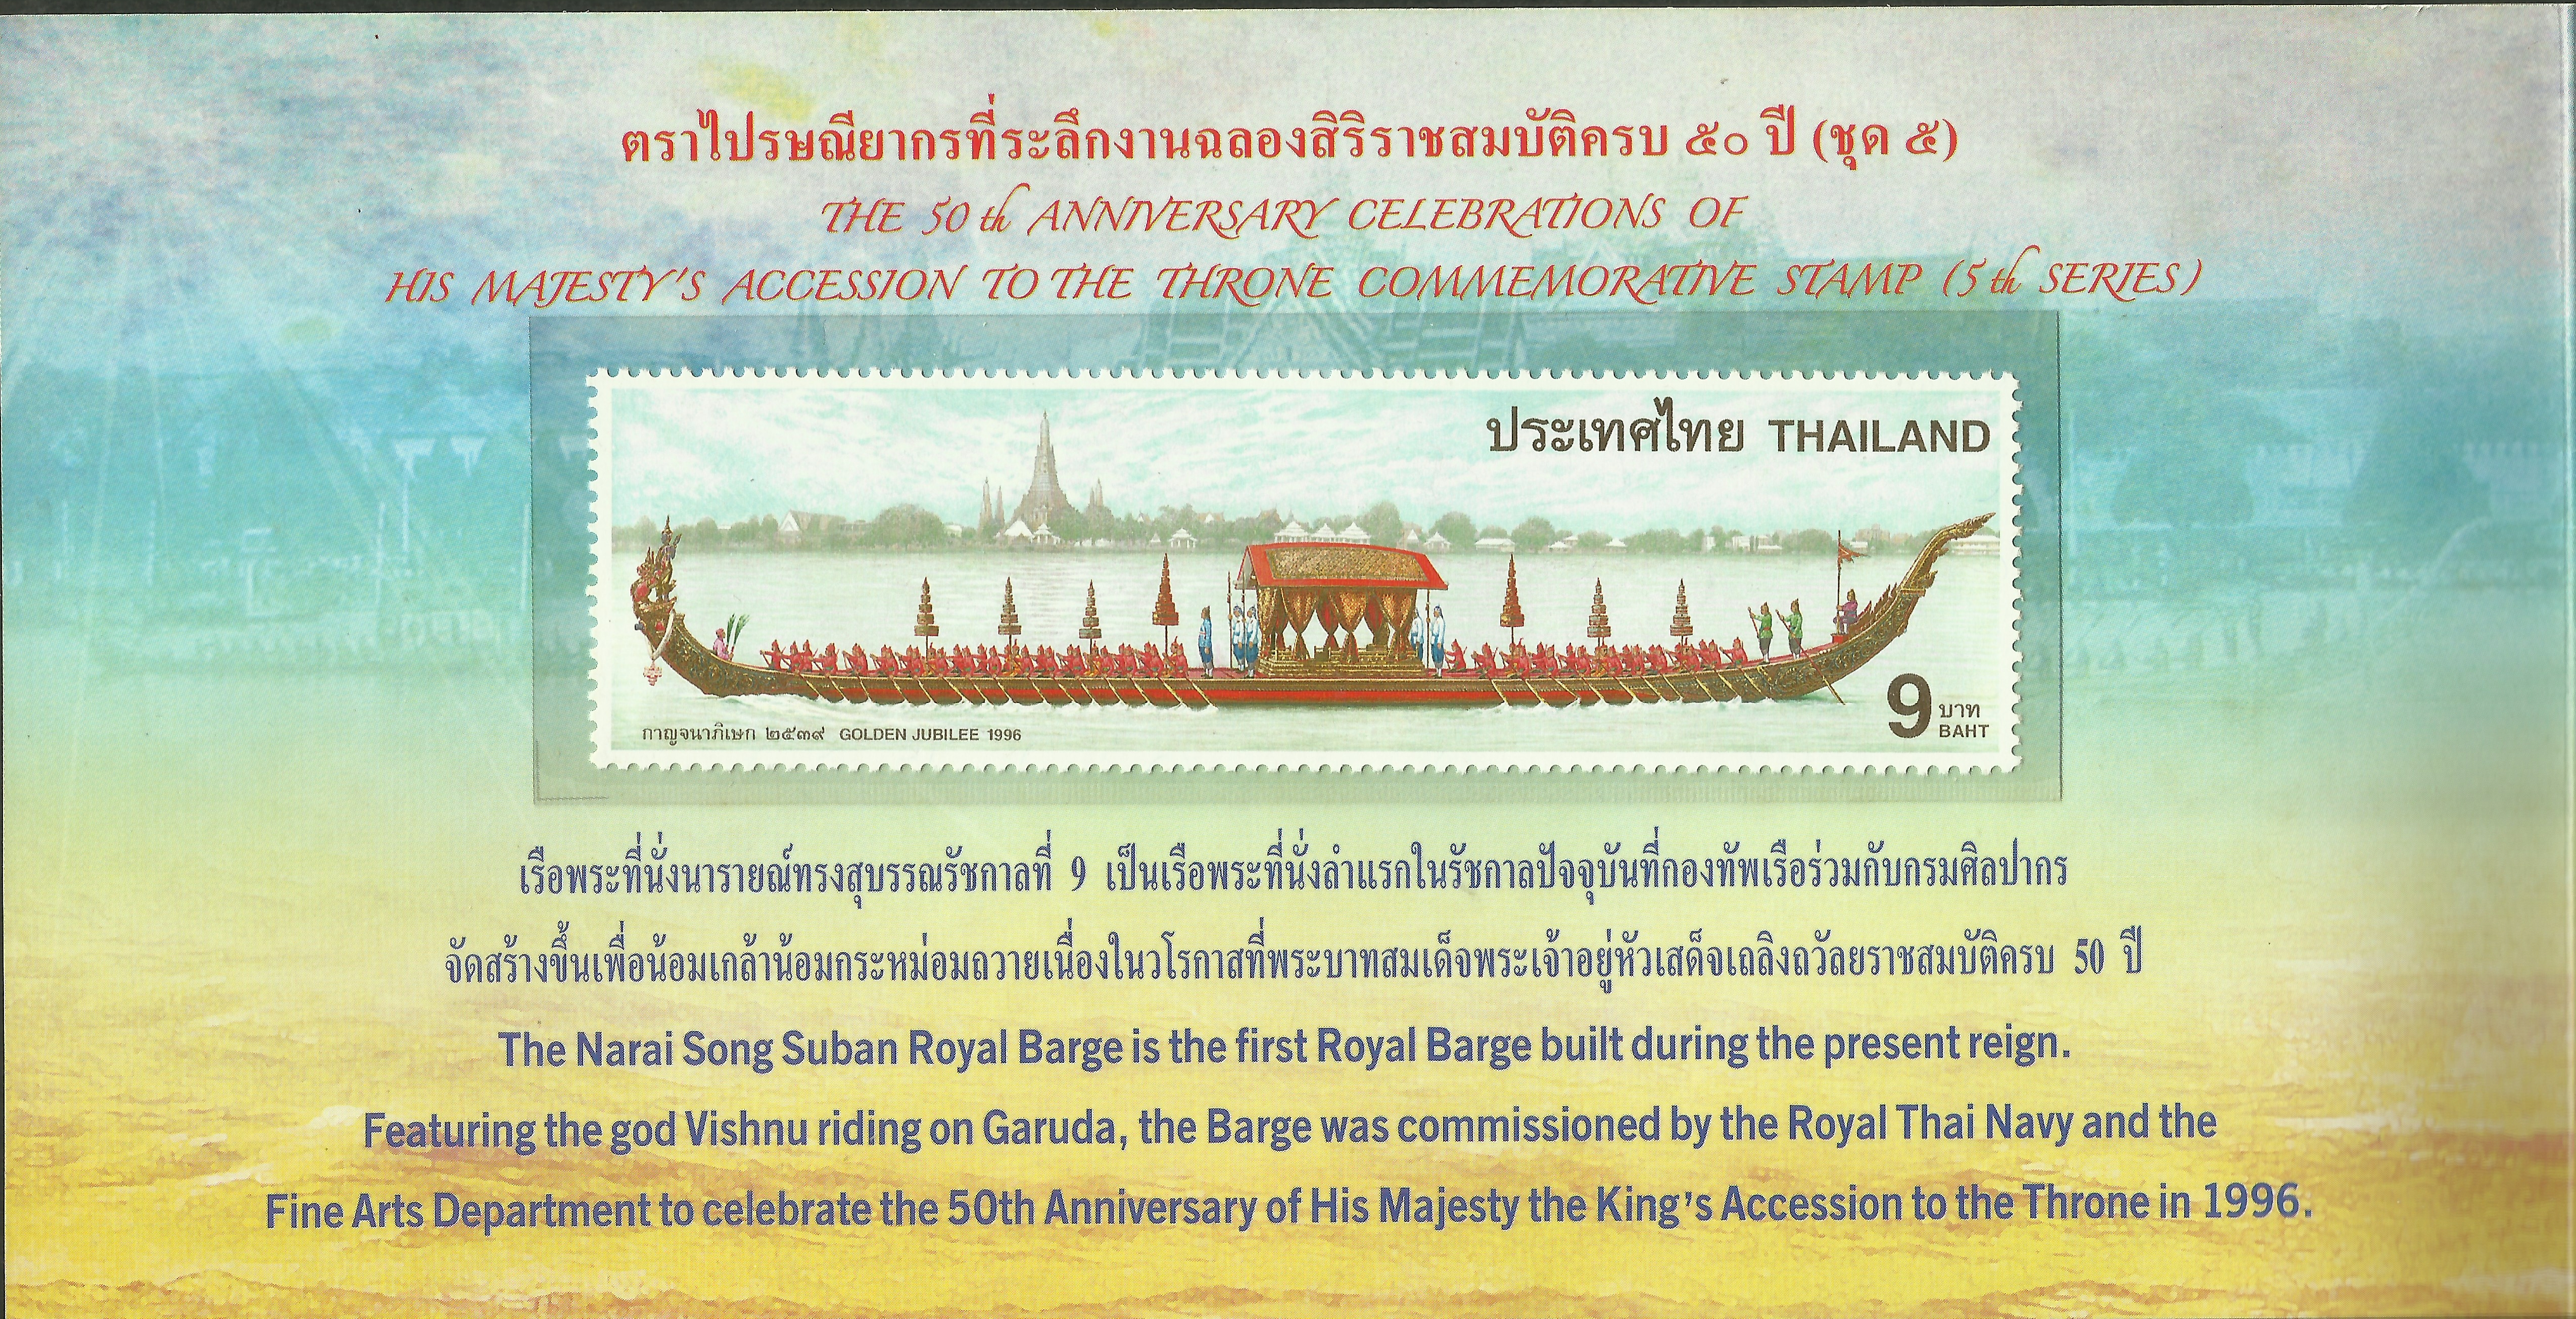 Thailand - Scott #1692 (1996), as displayed in Thailand Post presentation pack produced in 1997